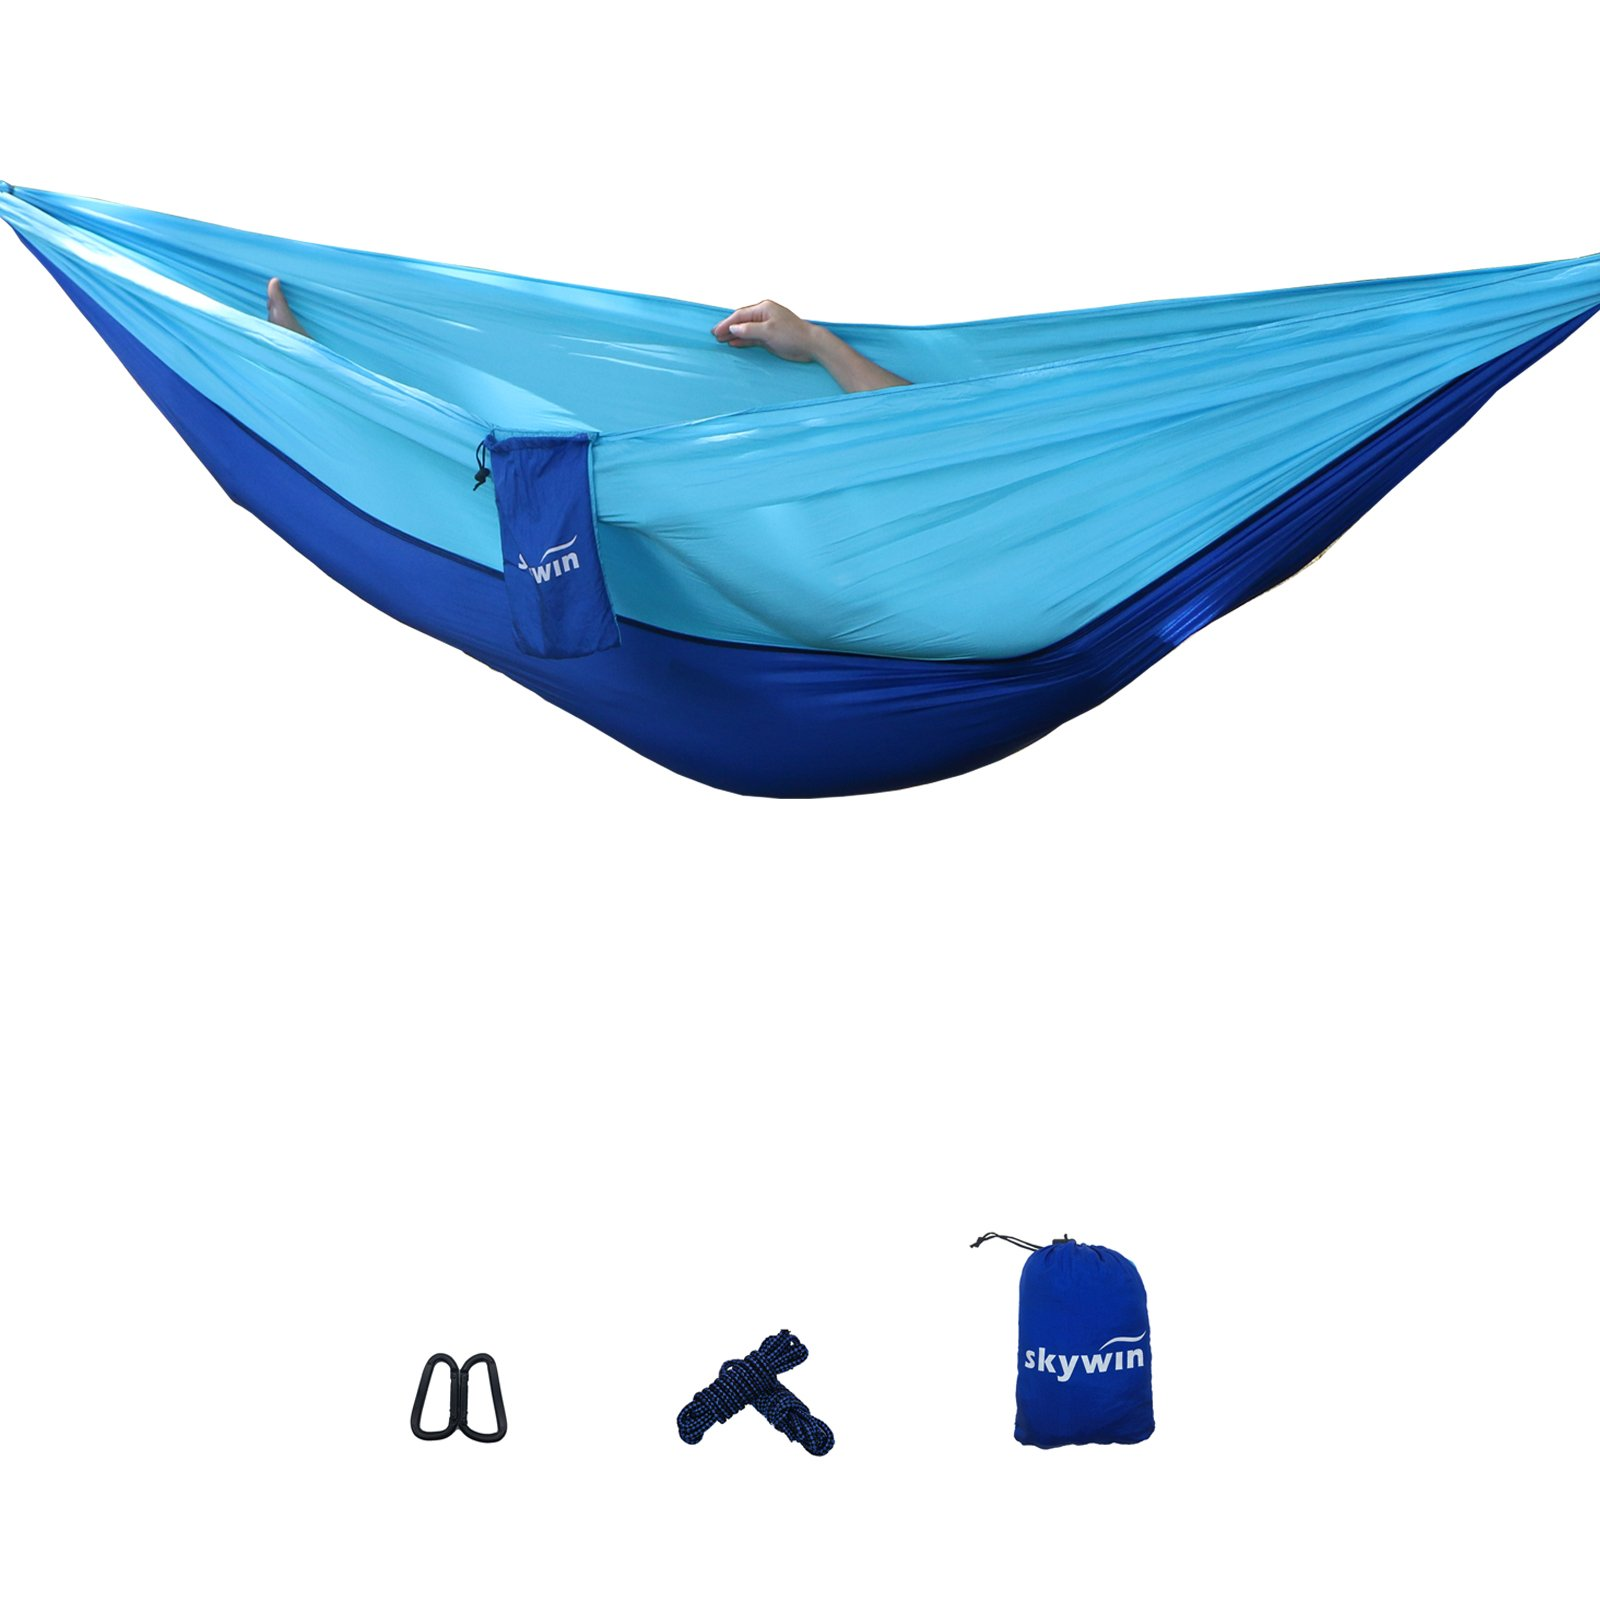 SKYWIN Camping Hammock Lightweight Parachute Hammock Multifunctional For Travel,Camping,Hiking, Beach, Yard , Portable with 2 Carabiners and 2 Hanging Ropes 10FT by Each ( Blue Stitching)